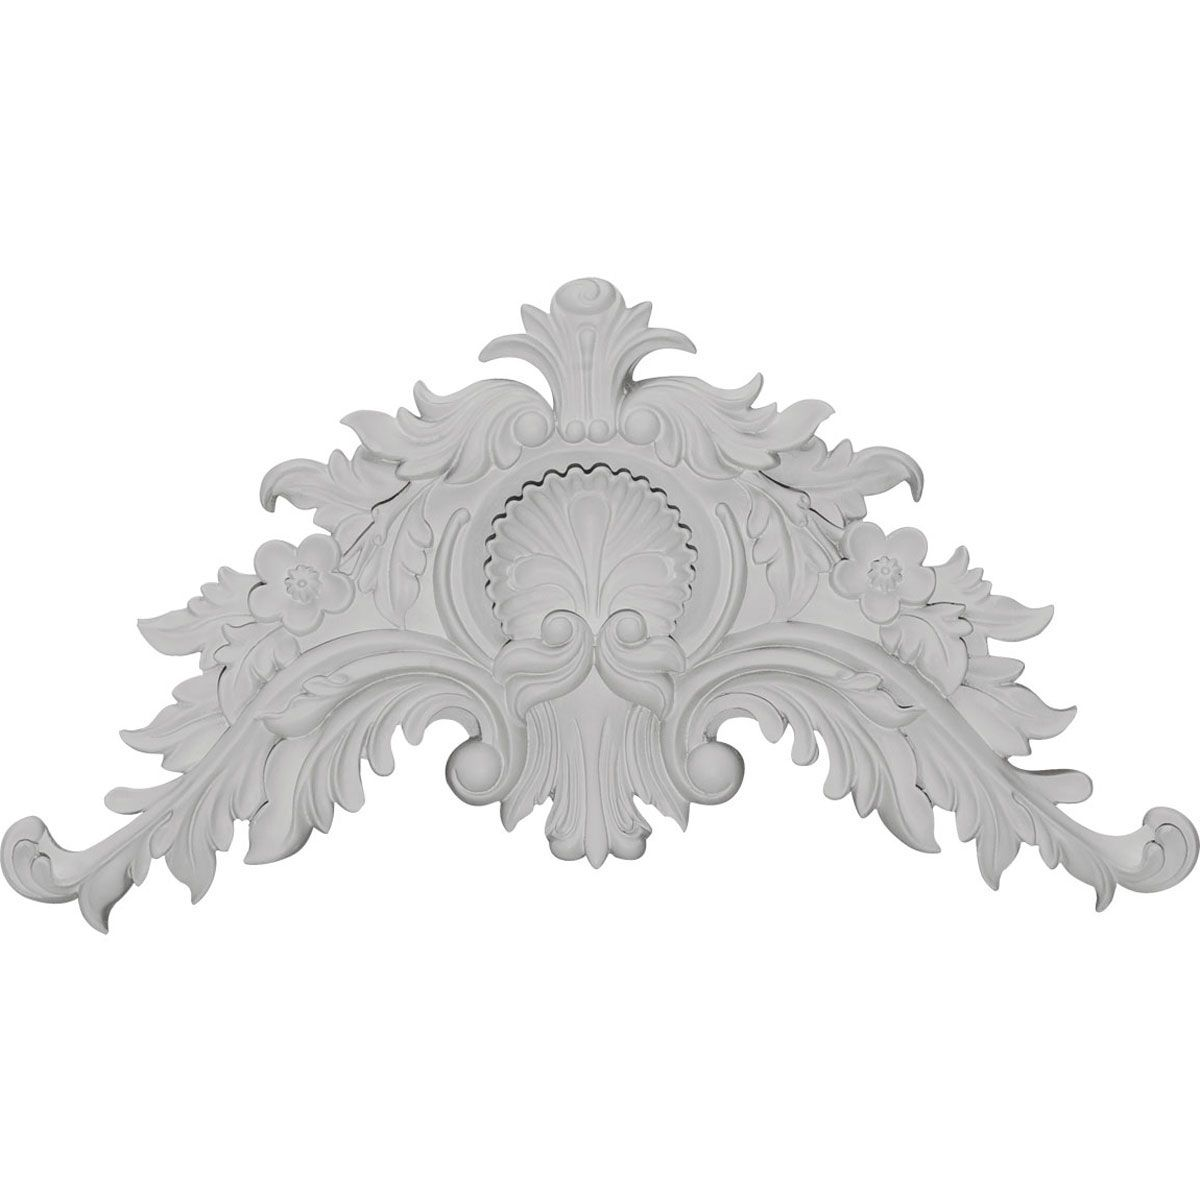 16 1 4 Inch W X 8 3 4 Inch H X 1 5 8 Inch P Small Shell Center With Scrolls Ekena Millwork Millwork Wood Appliques